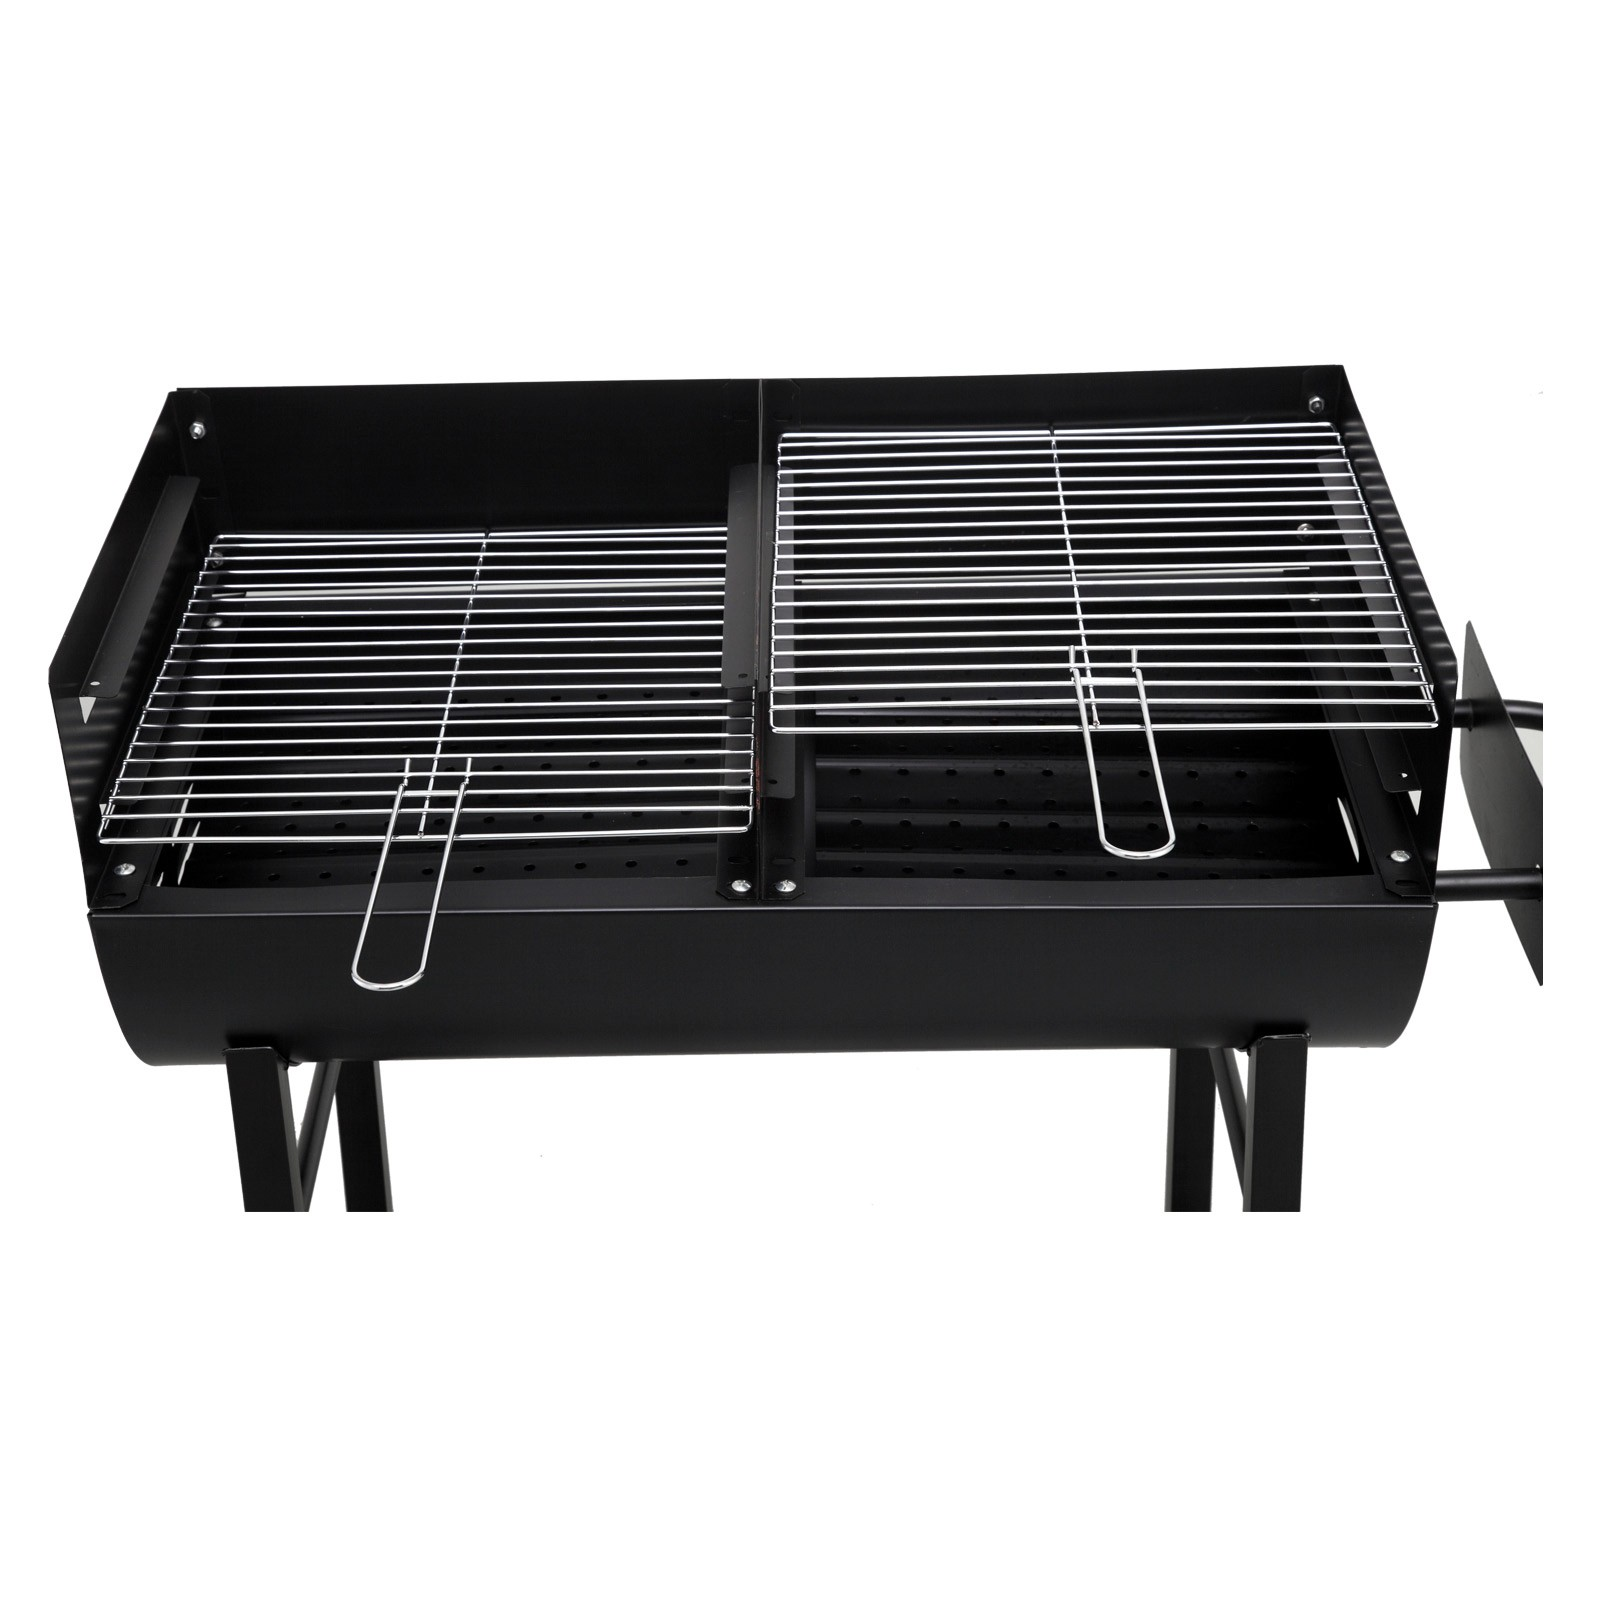 tepro holzkohlengrill grillfass grillwagen kohlengrill lfassgrill grill detroit ebay. Black Bedroom Furniture Sets. Home Design Ideas